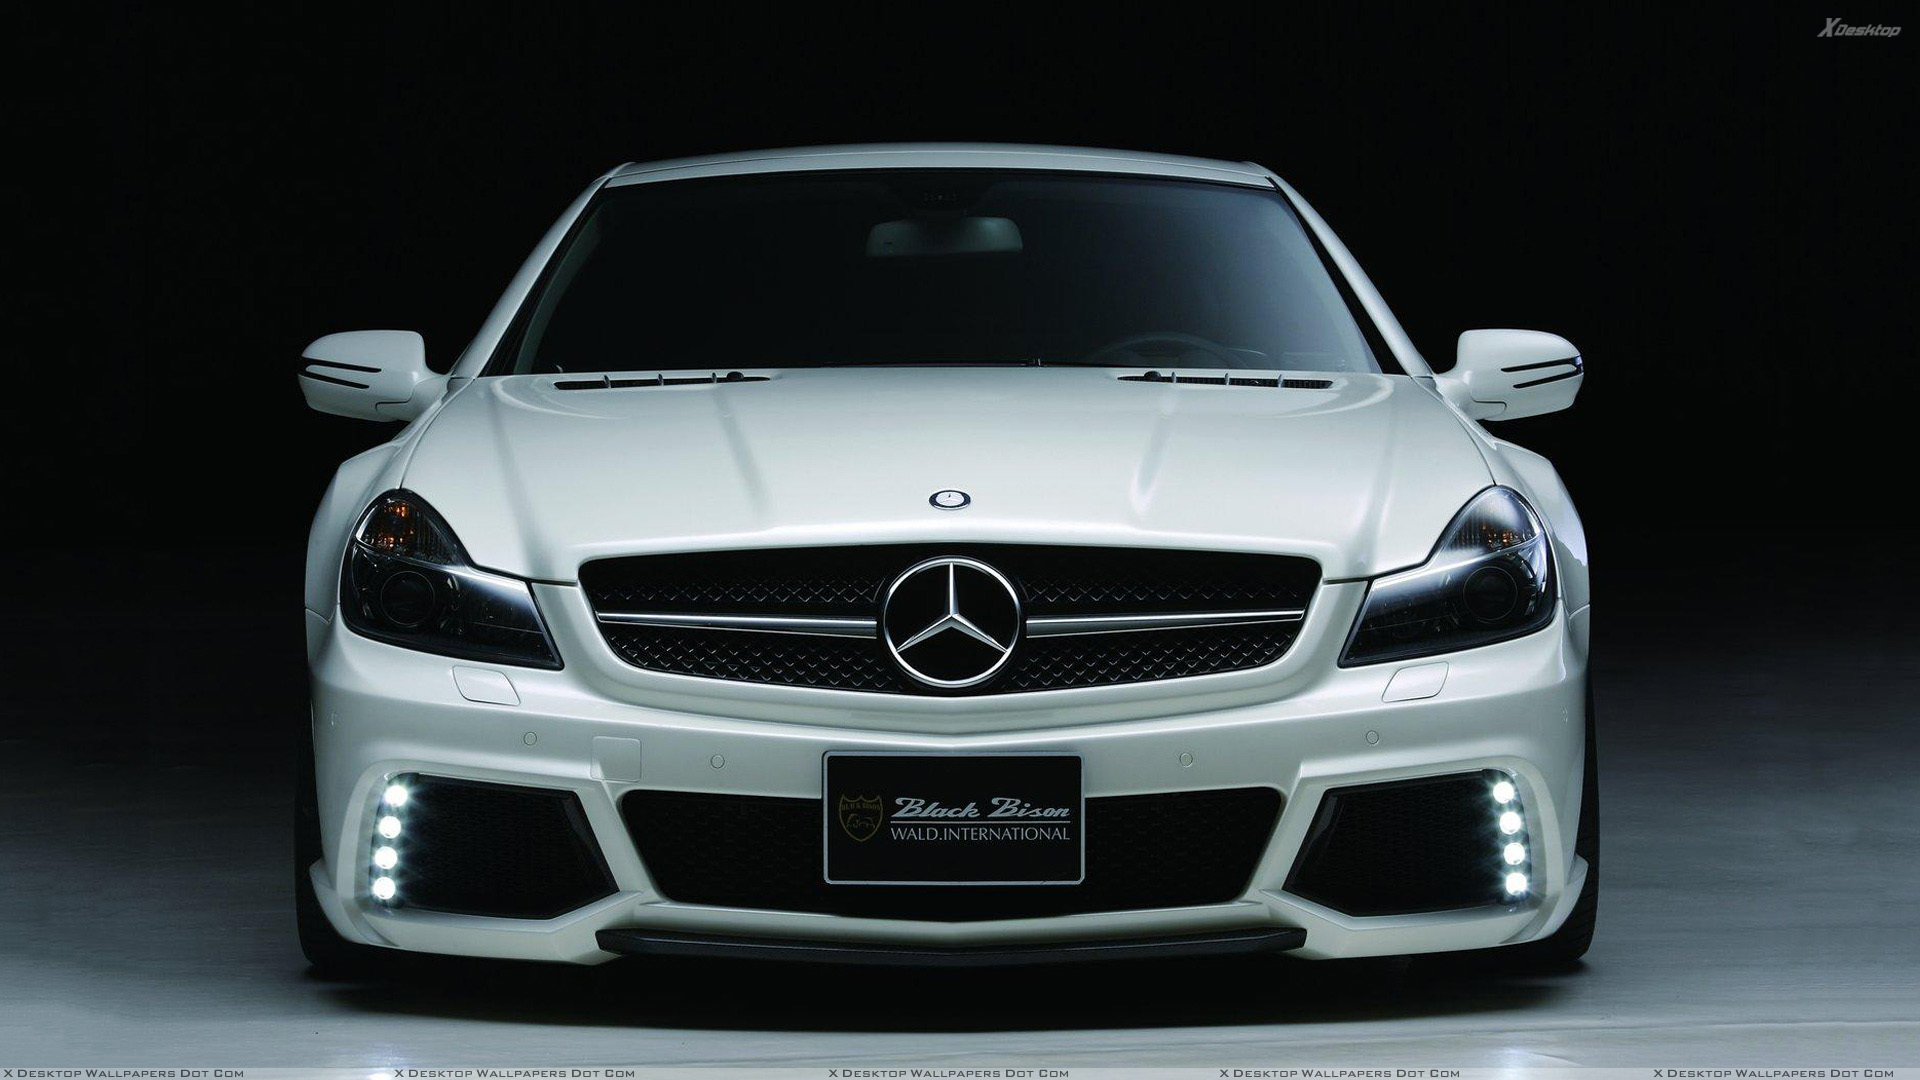 Front Pose Wald Mercedes Benz R230 Black Bison Edition In White